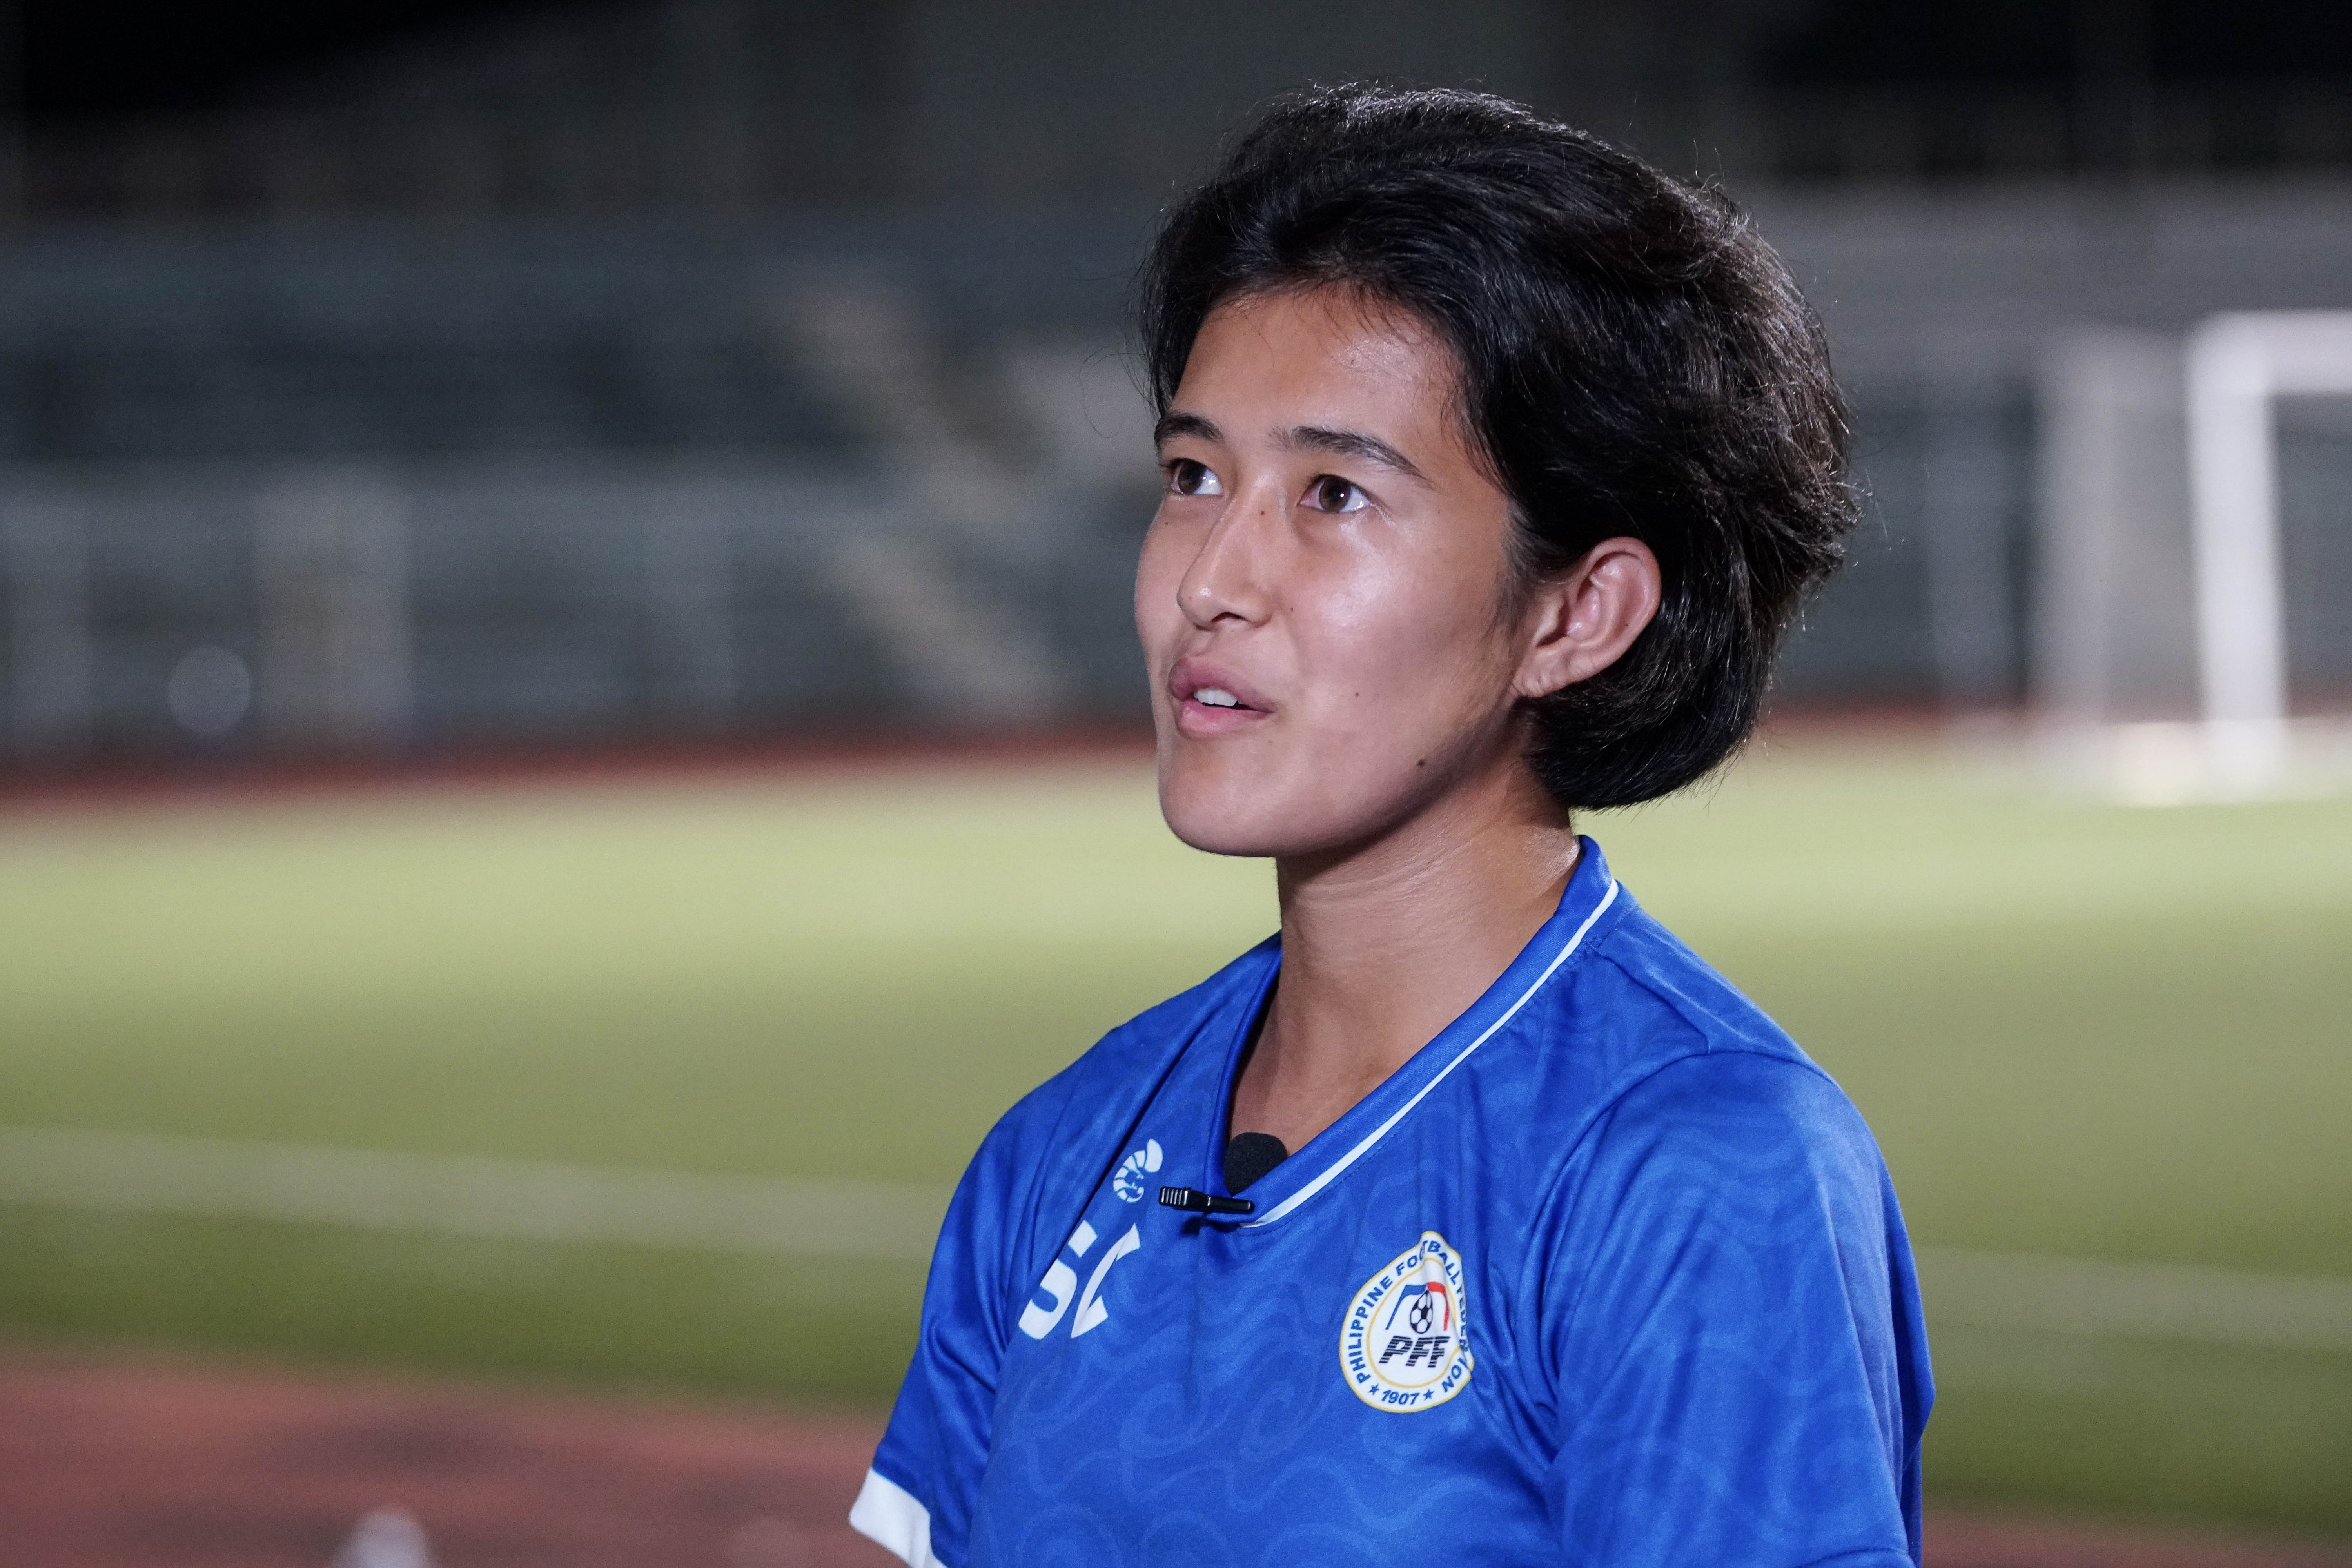 2850456ab65 The midfielder was a revelation in the Women's Asian Cup qualifiers having  scored the equalizing goal that sent the Philippines through to the final  round ...